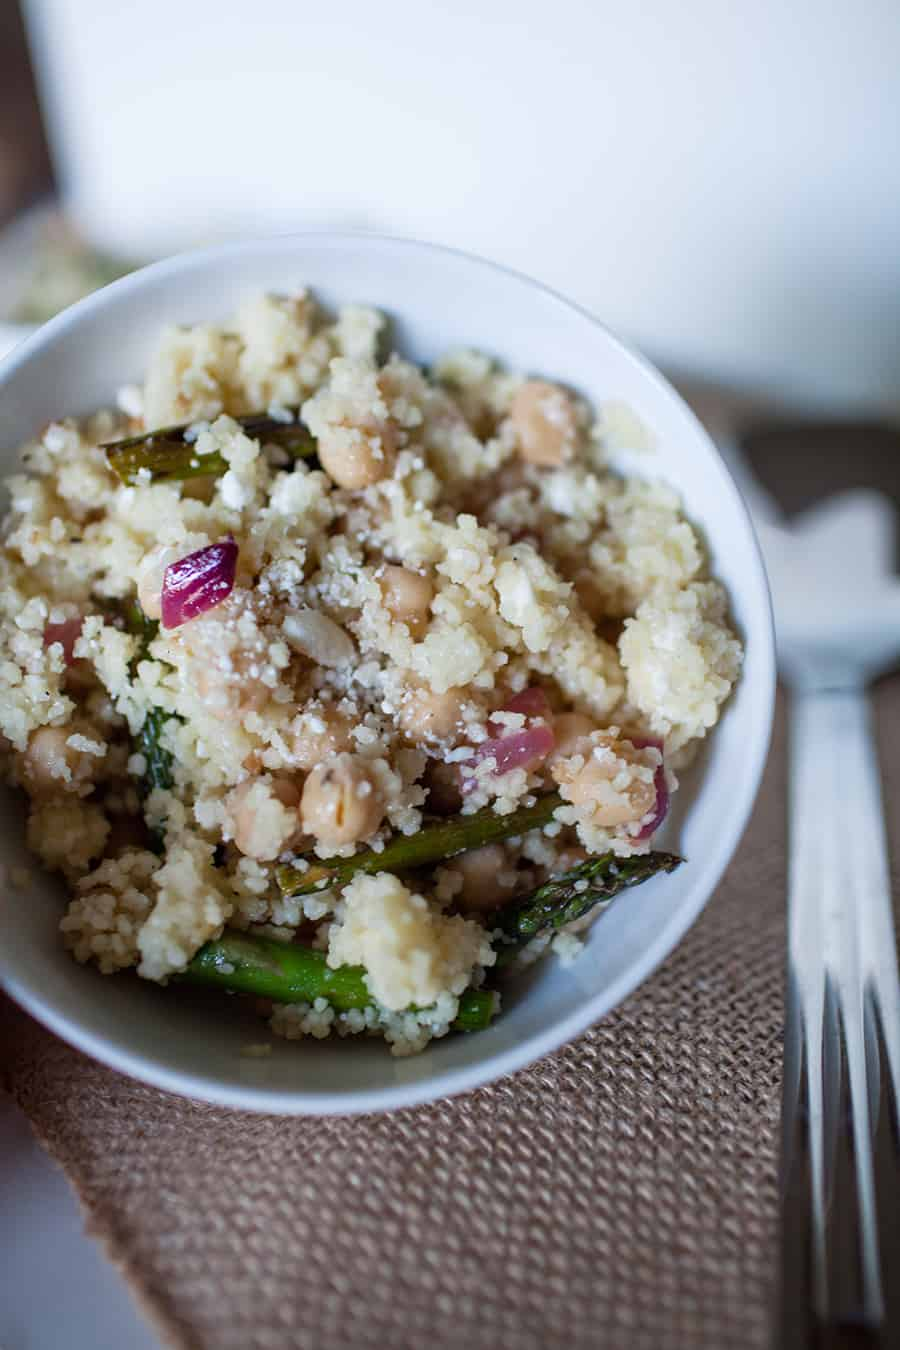 The perfect side dish for summer! Asparagus, feta and couscous makes this a delicious mediterranean salad!